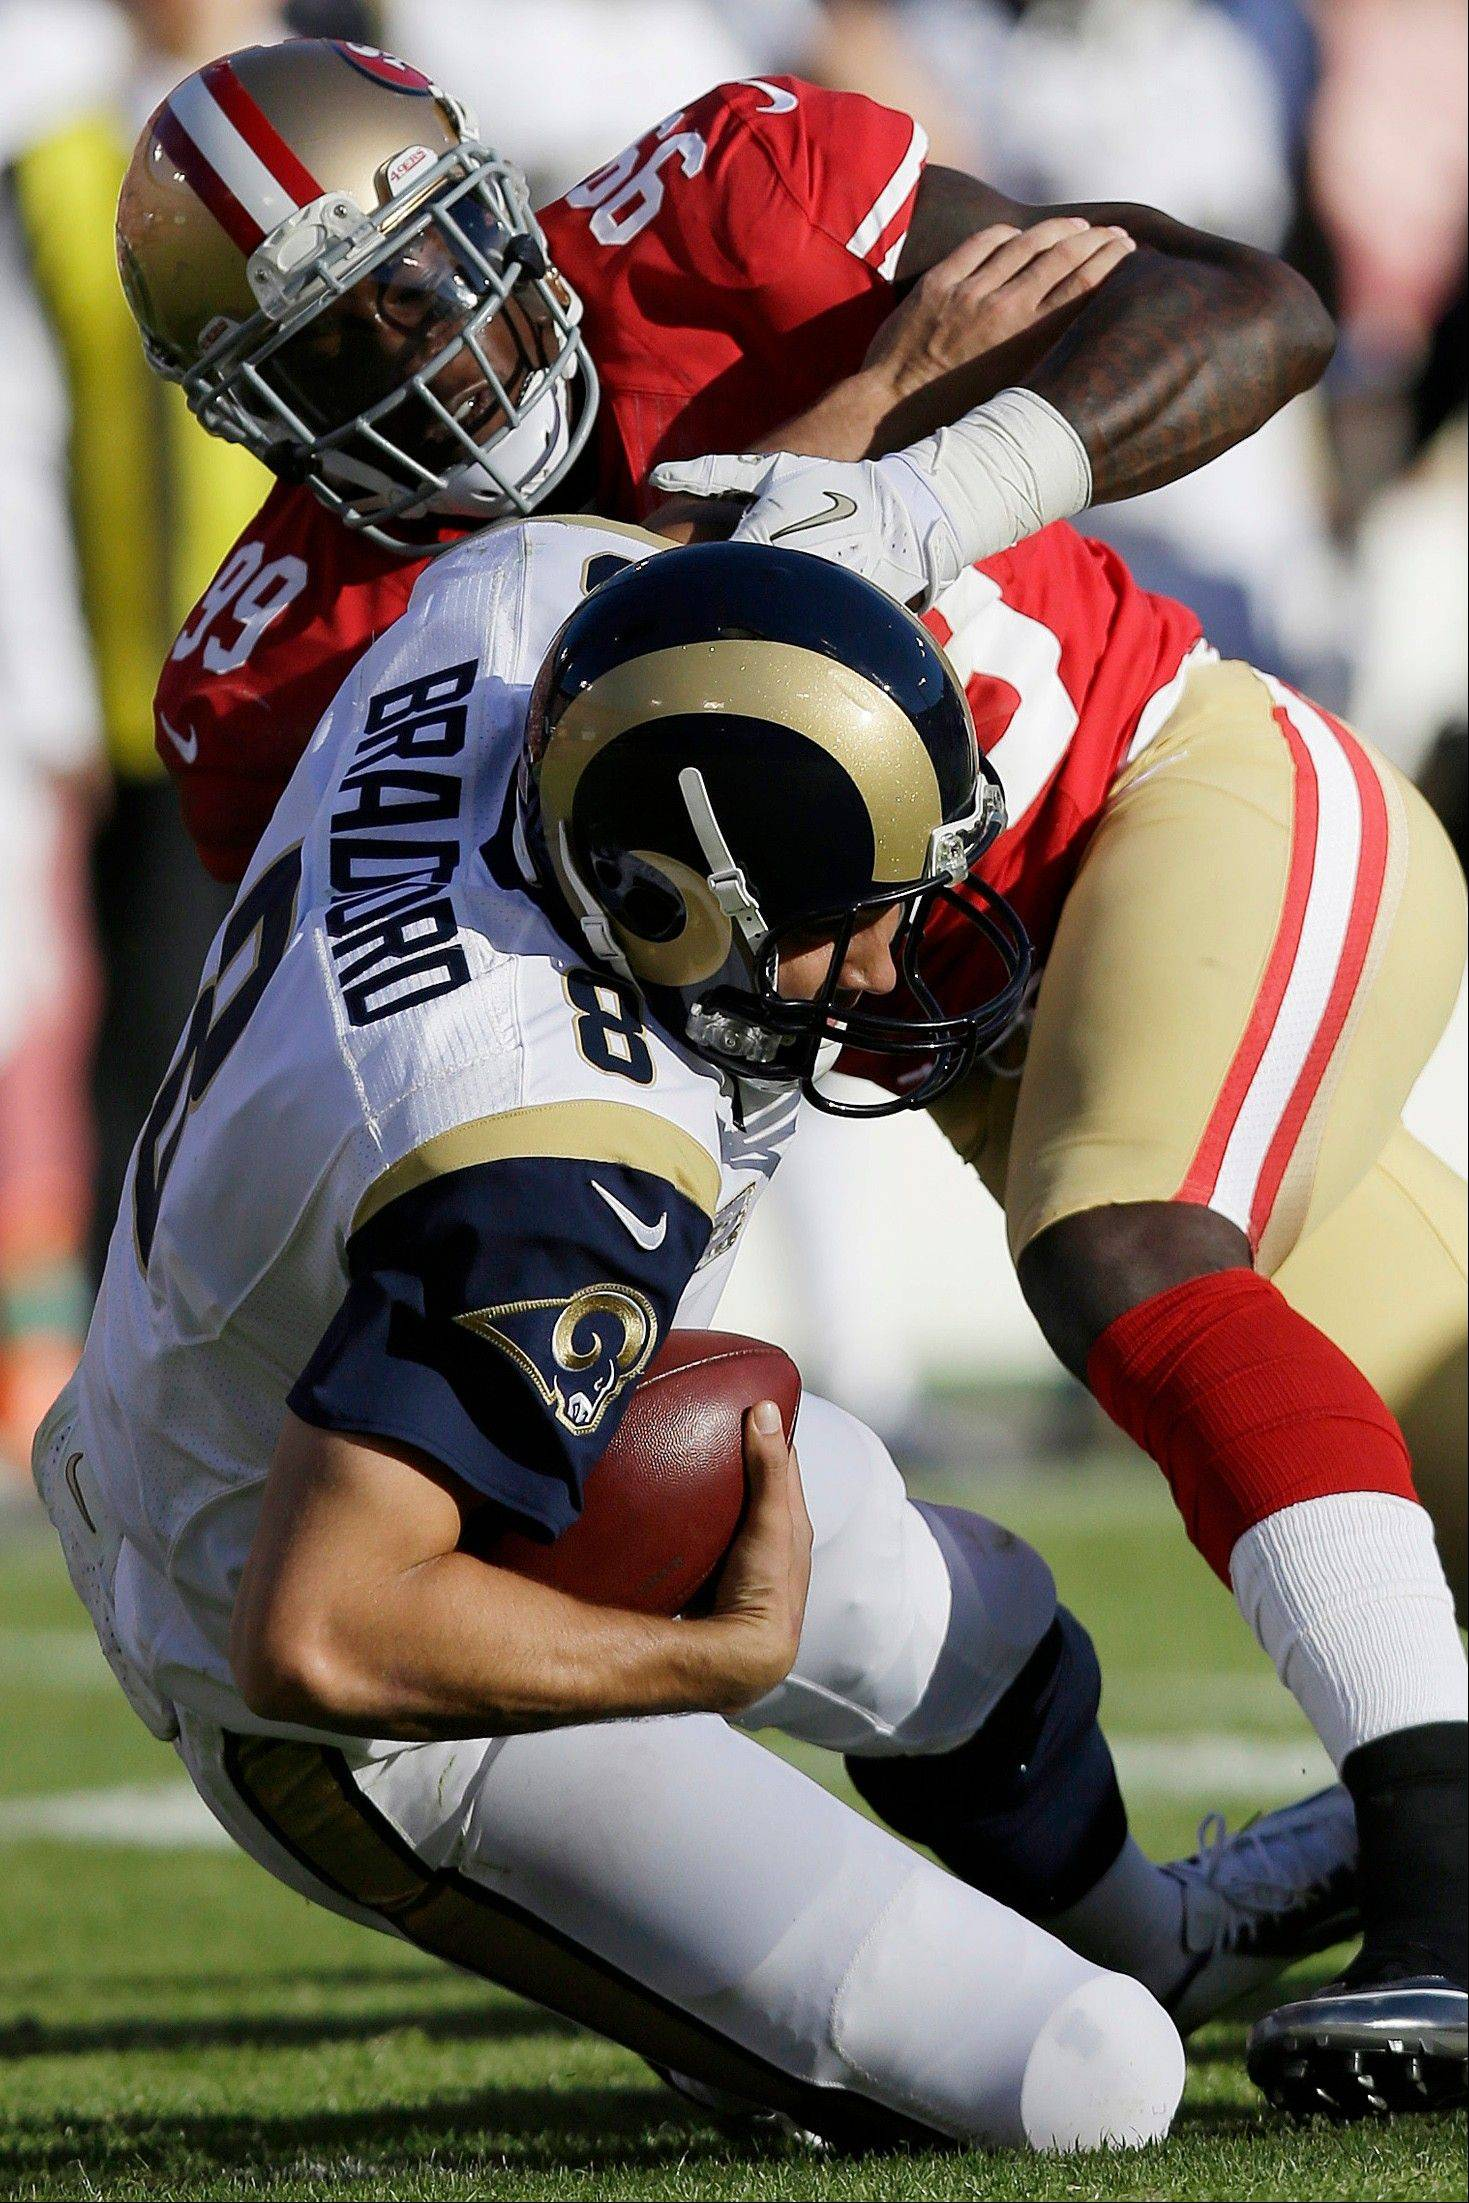 Rams quarterback Sam Bradford is sacked by 49ers outside linebacker Aldon Smith in last Sunday's game at San Francisco.